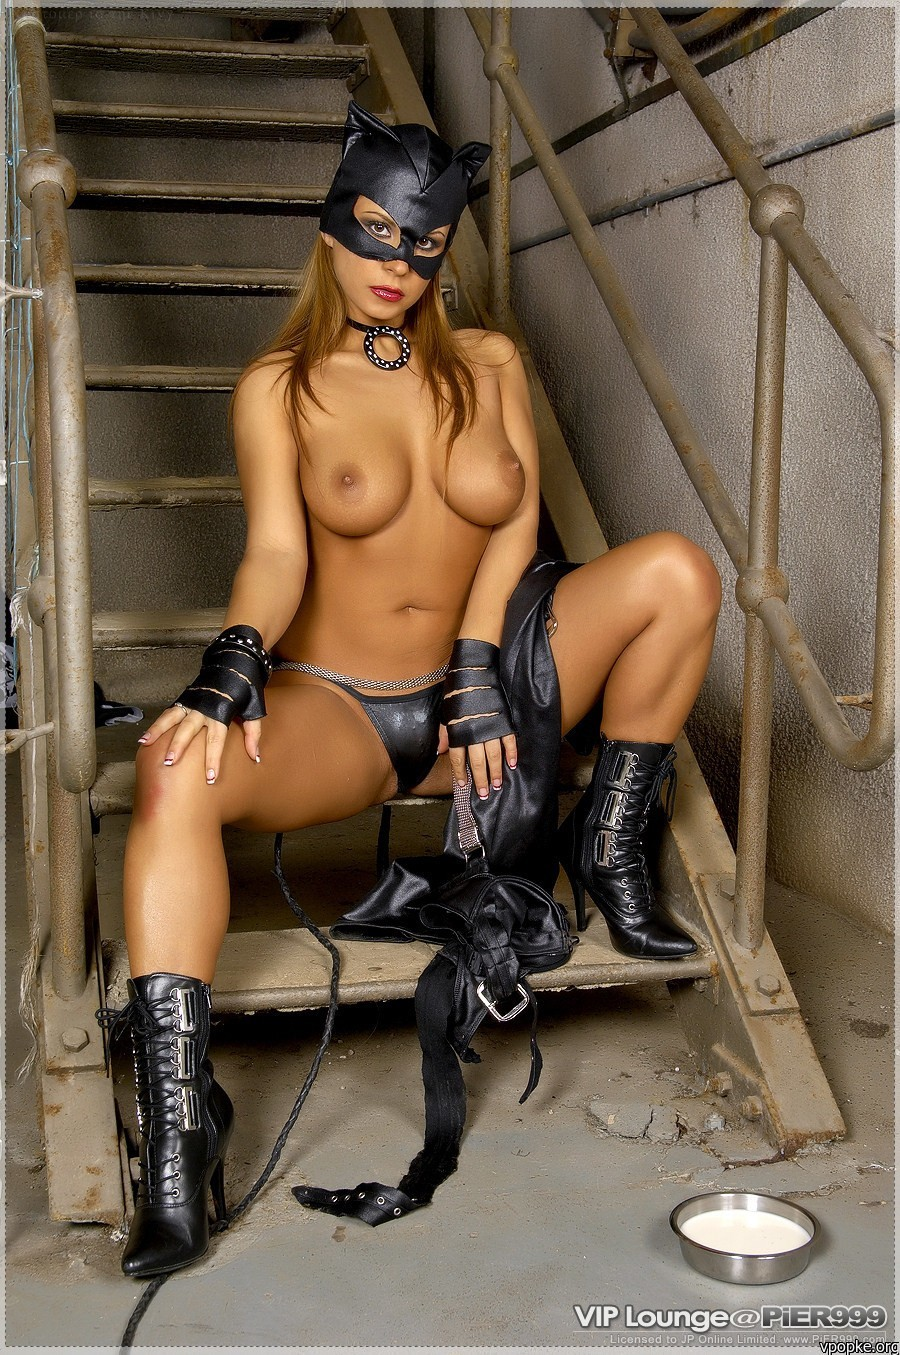 Galery photos porn sex catwomen softcore videos